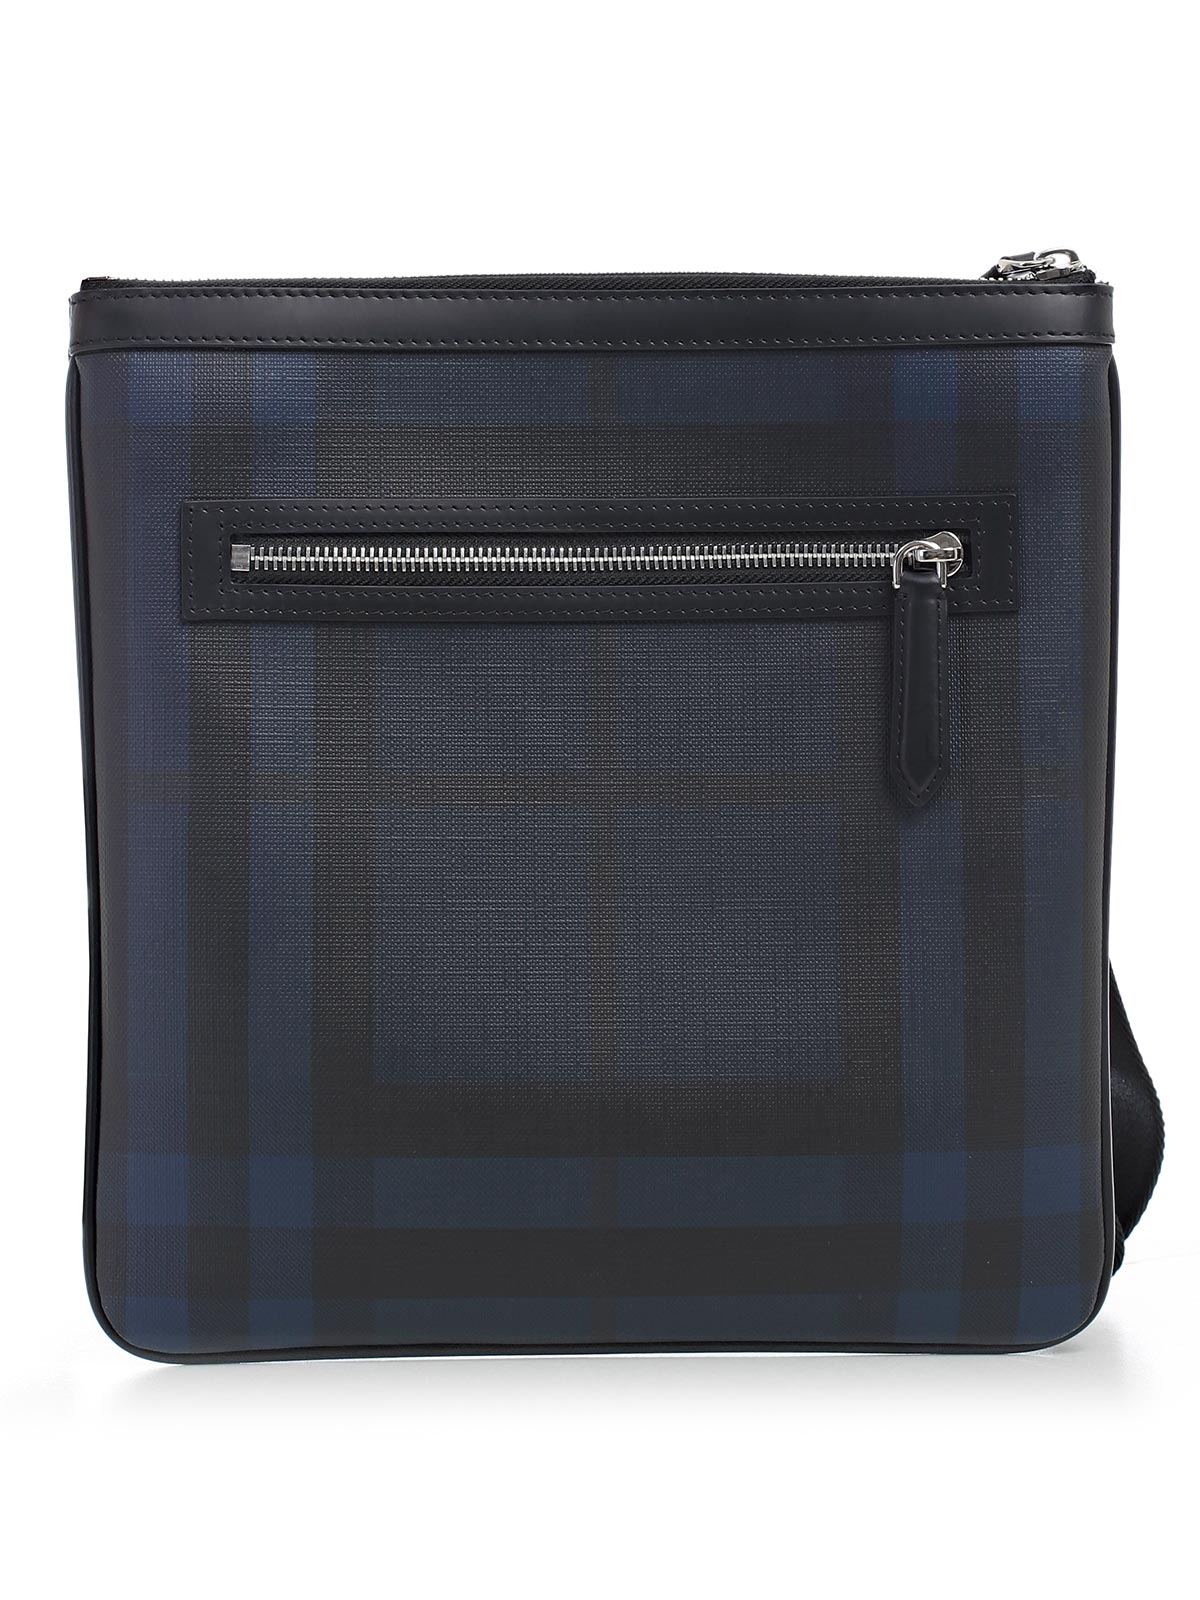 Picture of Burberry Shoulder Bag